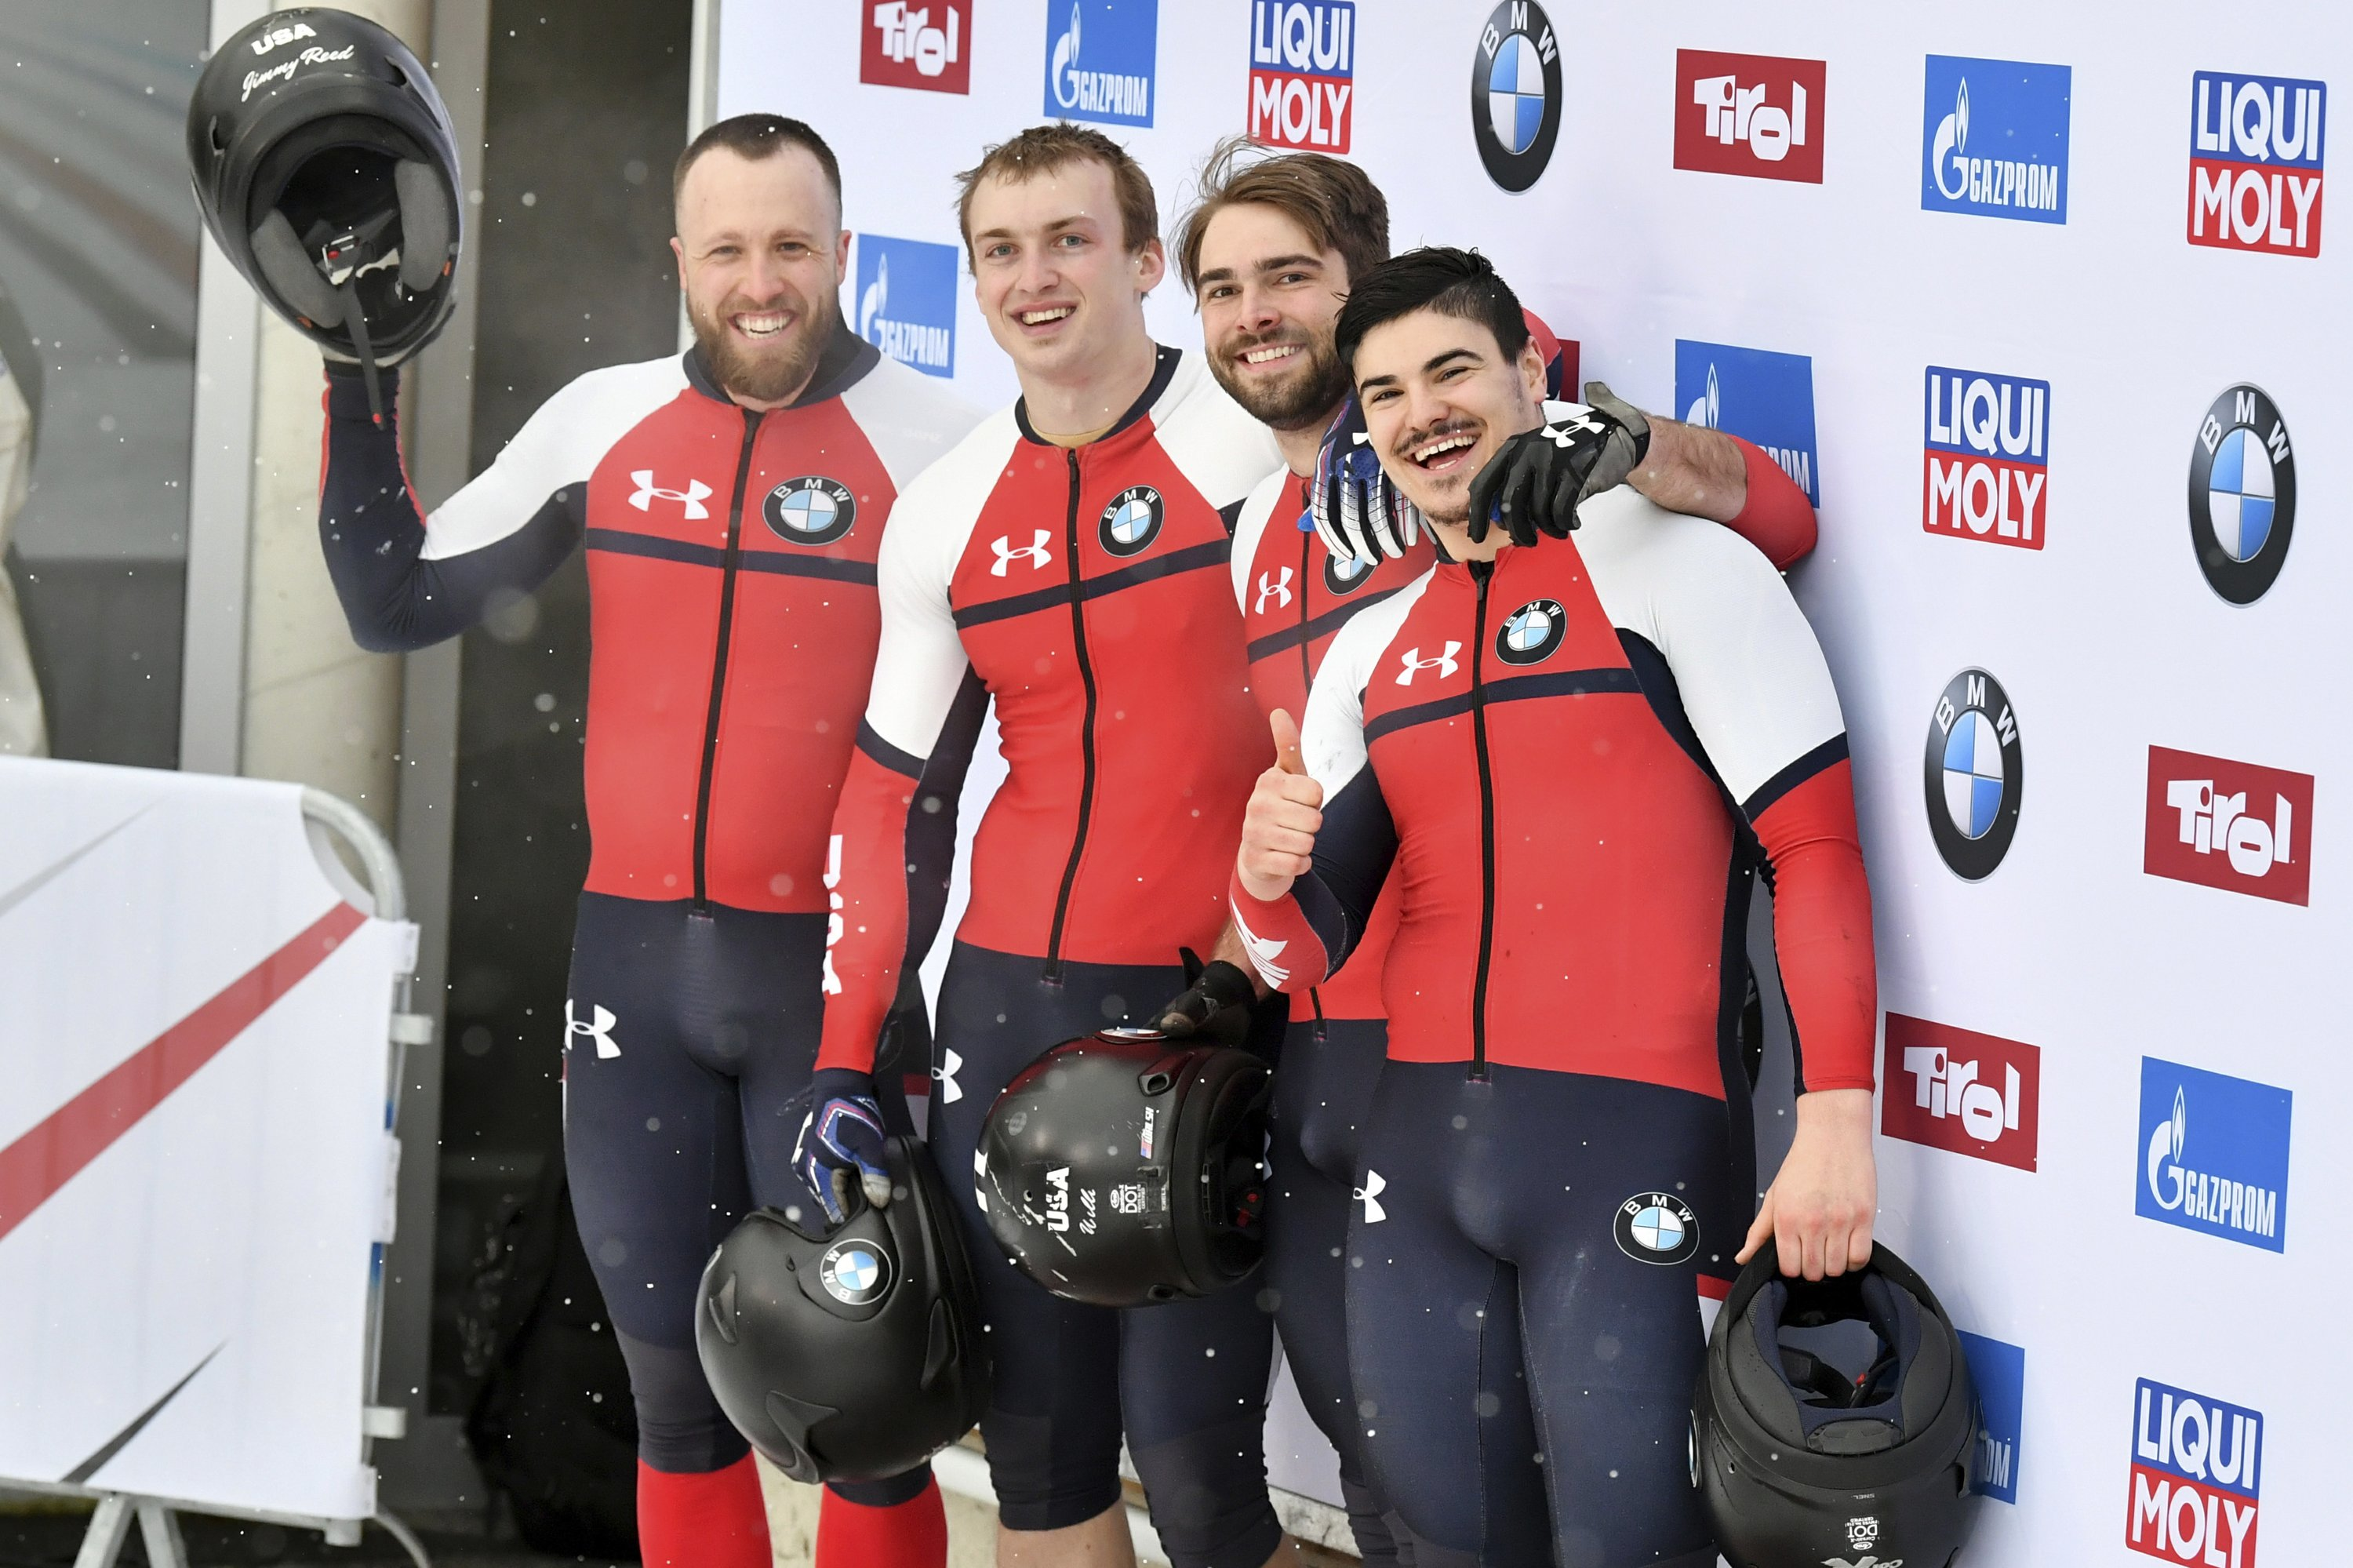 AP Interview: Aron McGuire hired as US bobsled-skeleton CEO